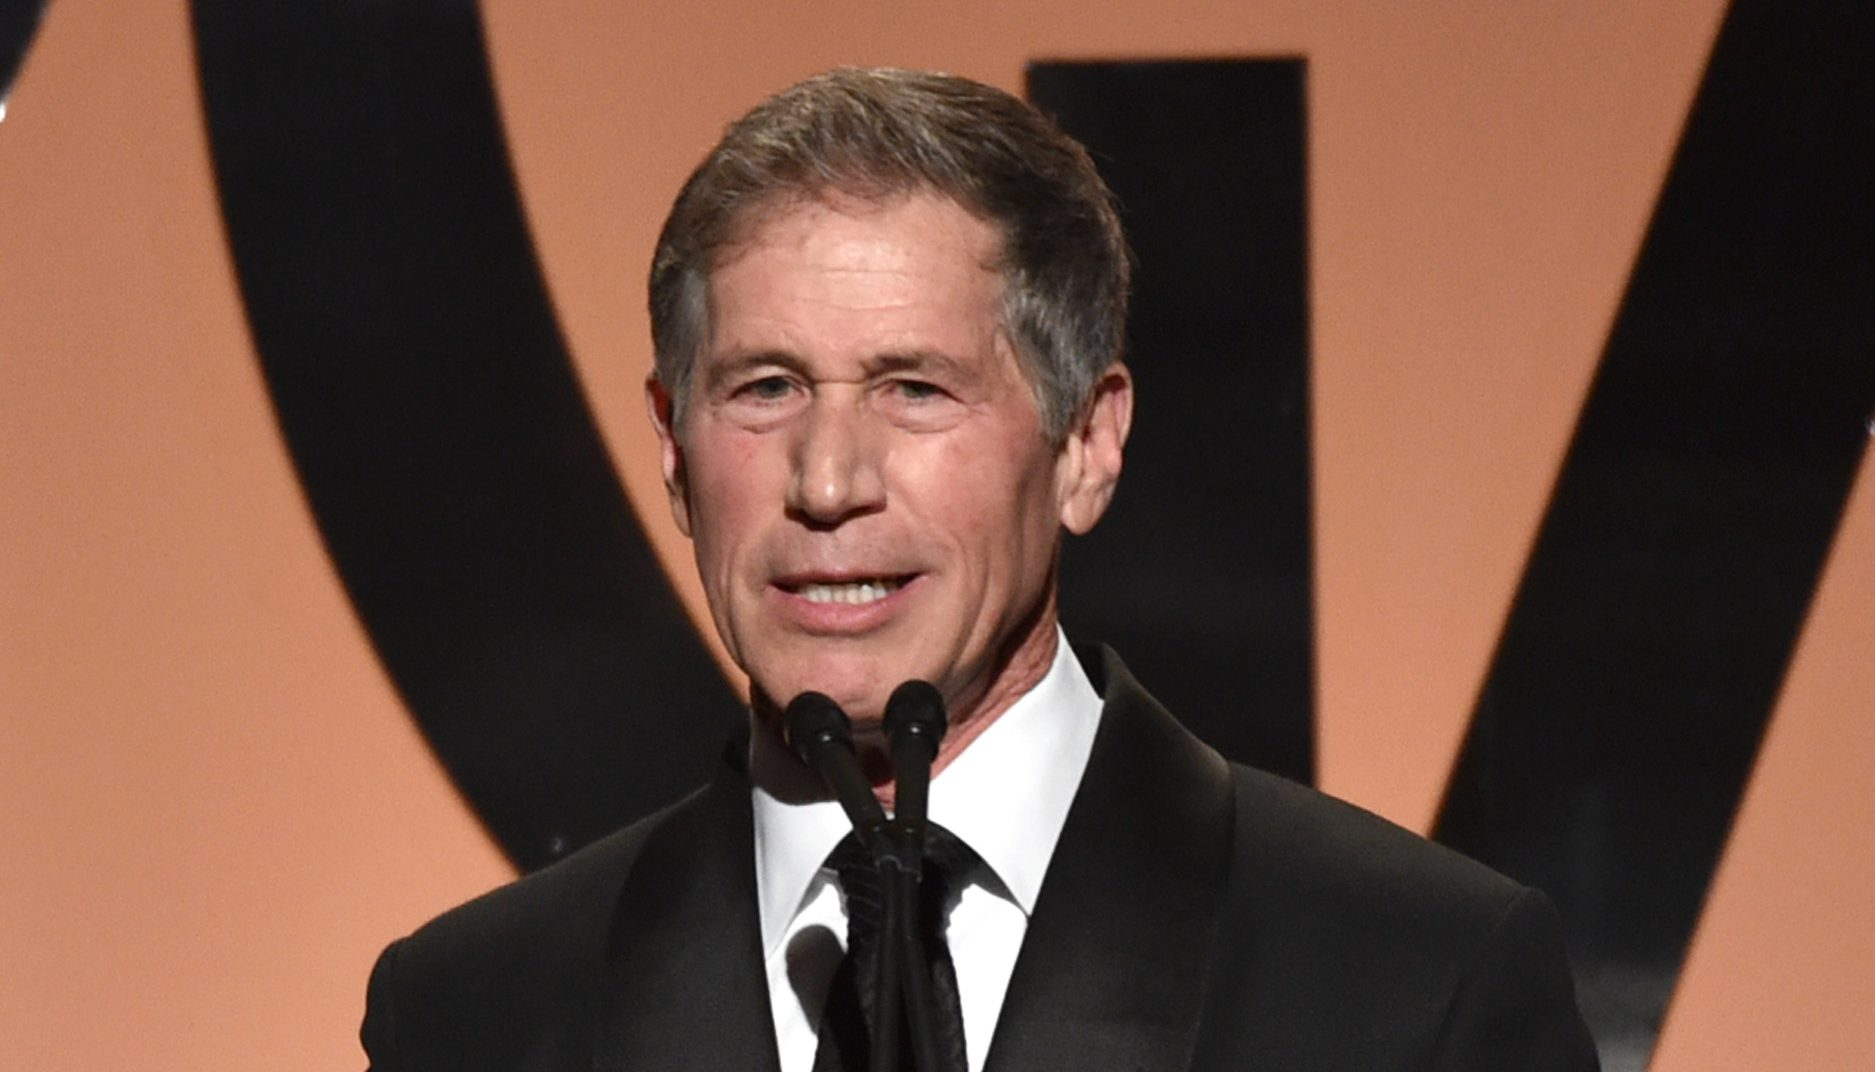 Lionsgate CEO Jon Feltheimer's Pay Jumped More Than 70% To $19 Million In FY 2021